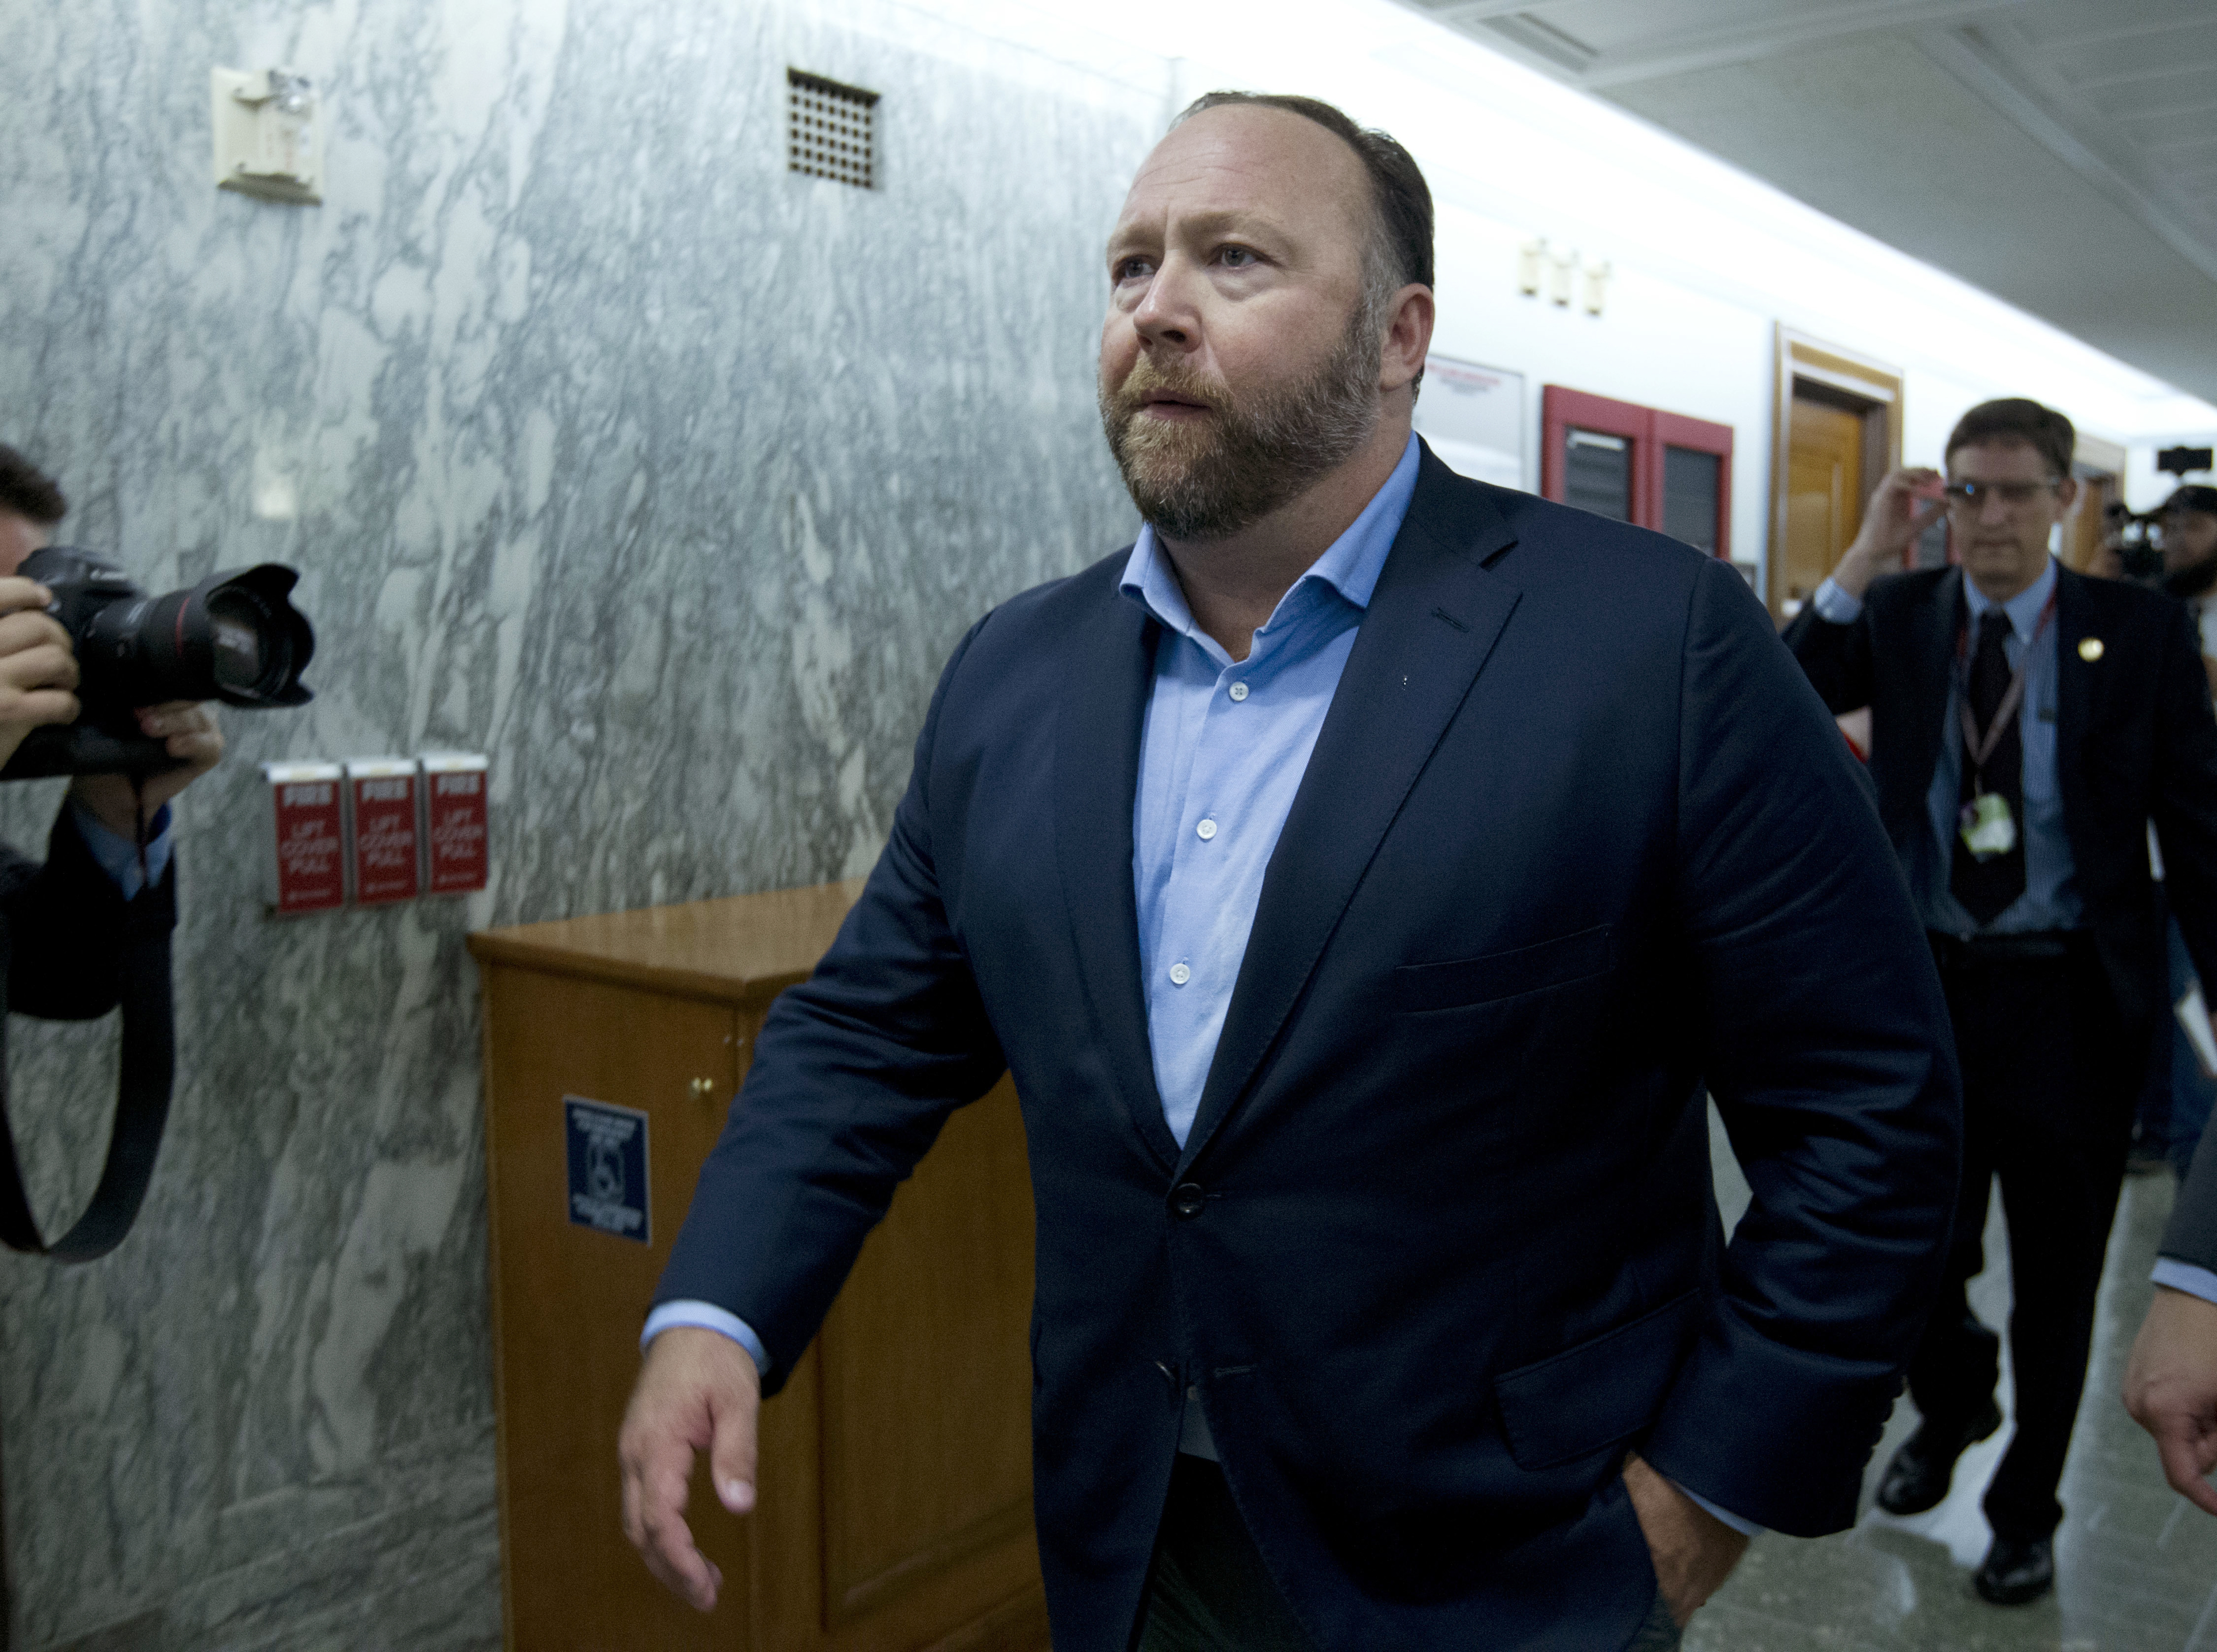 Alex Jones Banned From Facebook His Videos Are Still There And So Are His Followers The Washington Post